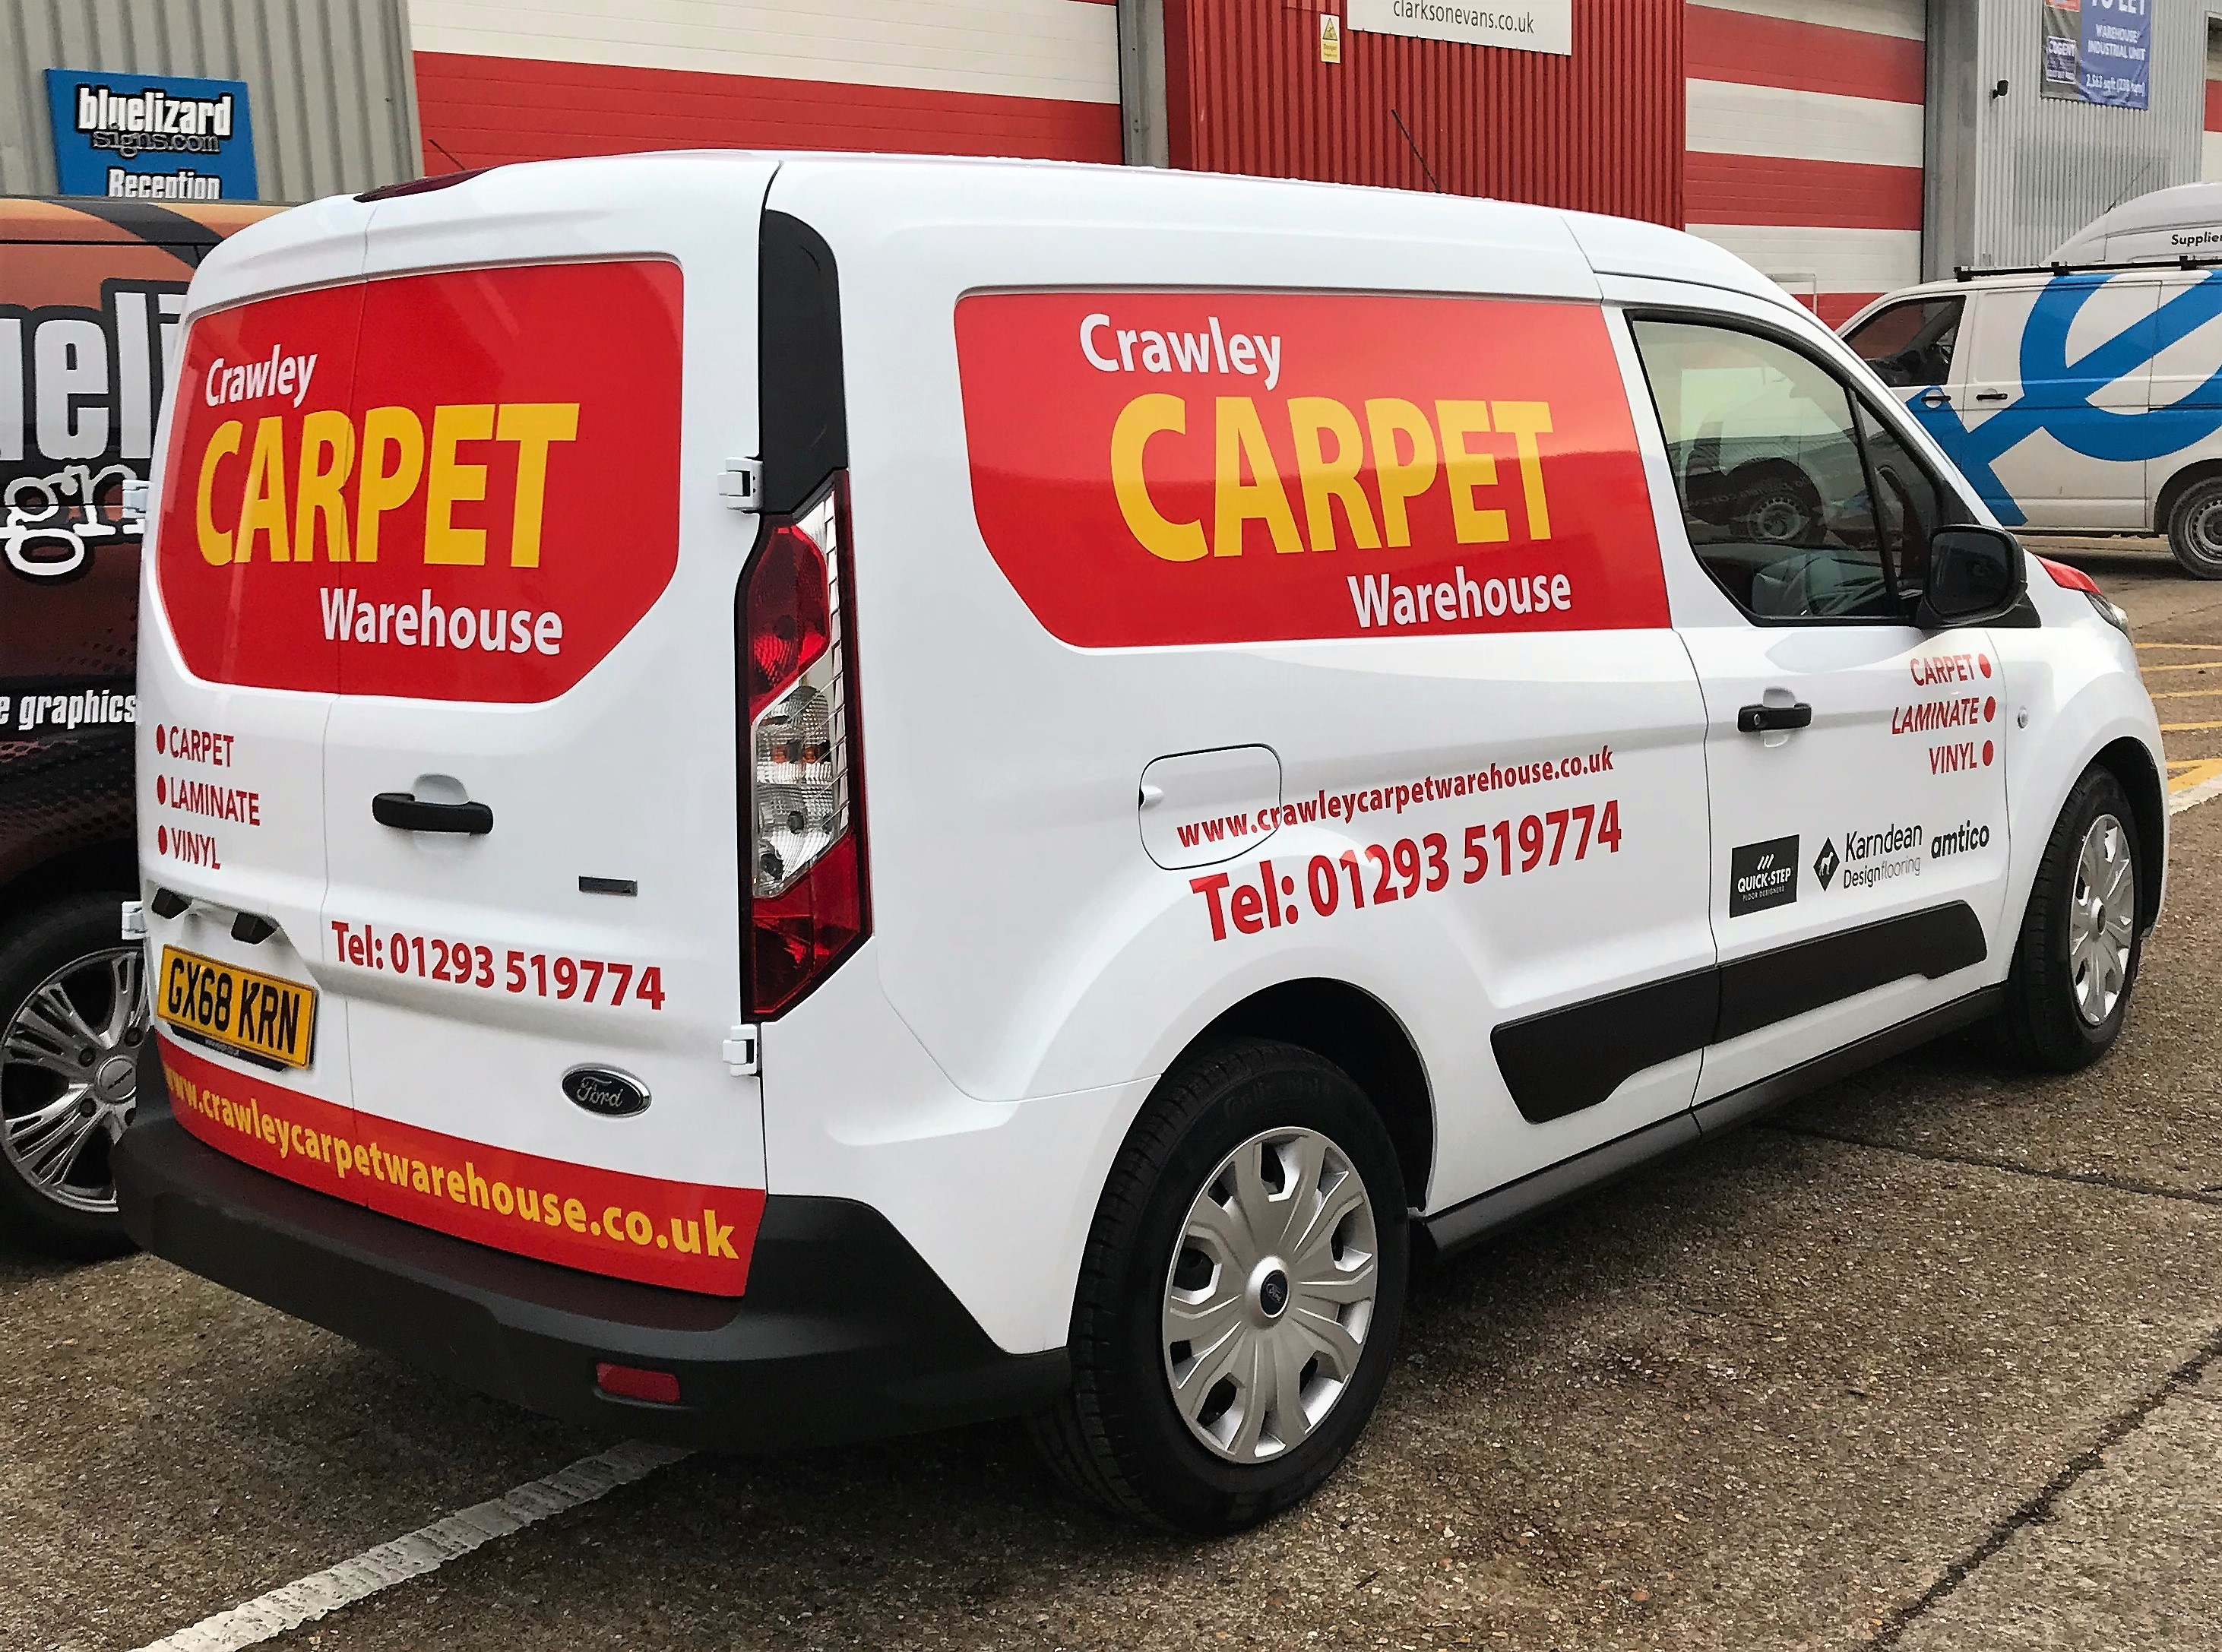 CRAWLEY CARPET WAREHOUSE